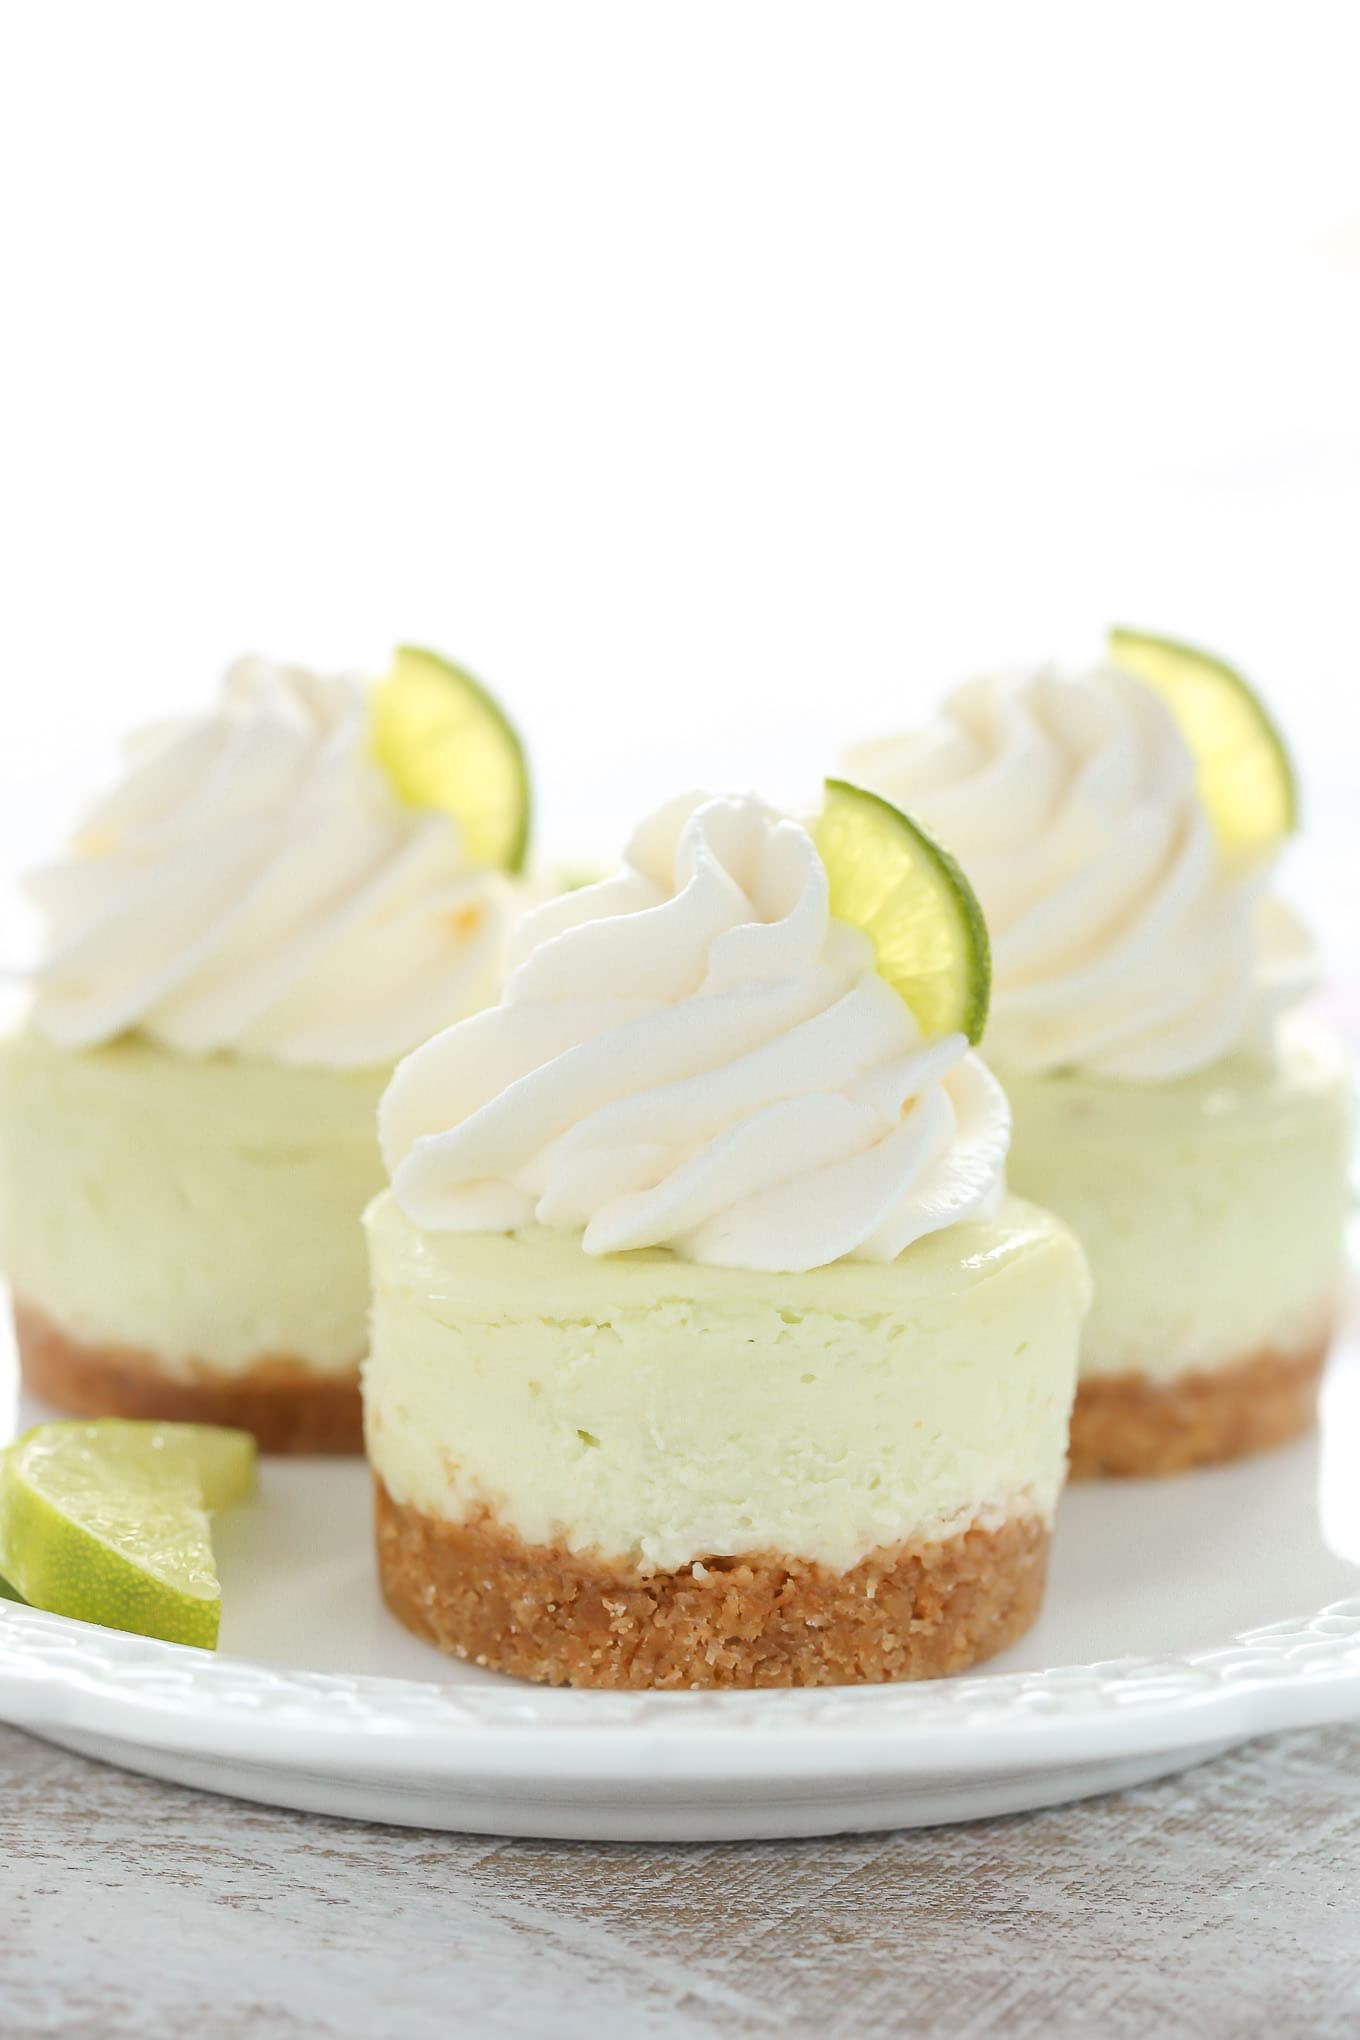 Smooth And Creamy Cheesecake With Sour Cream Topping